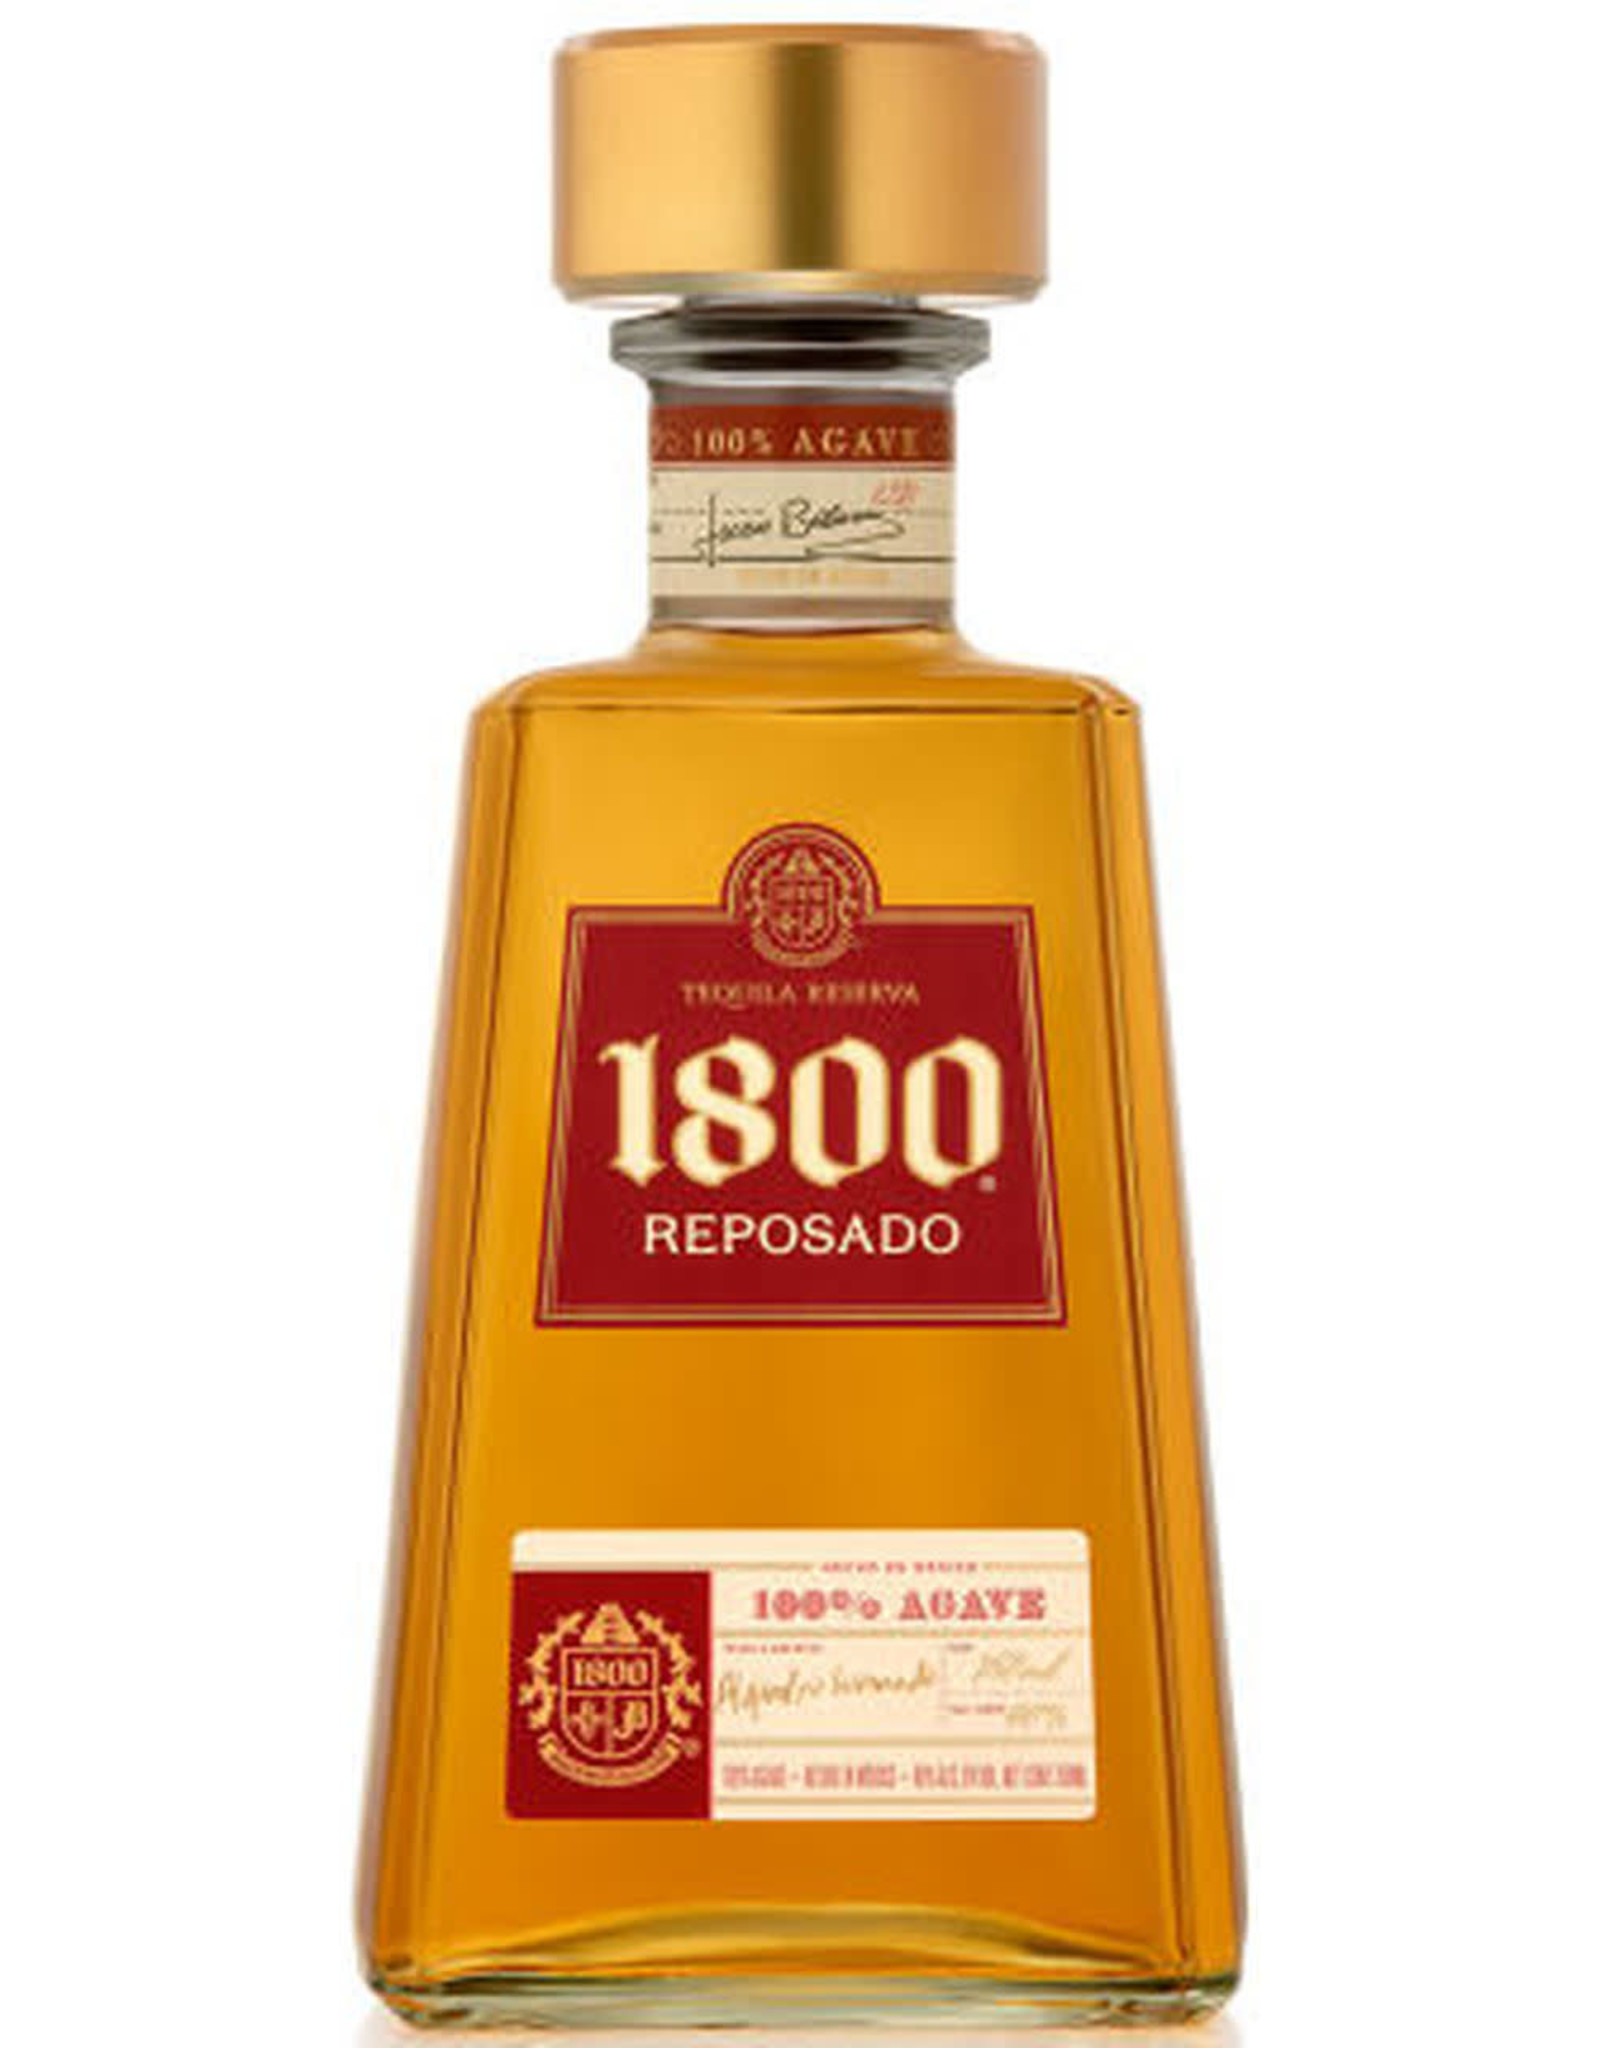 1800 1800 Tequila Reposado 750ML